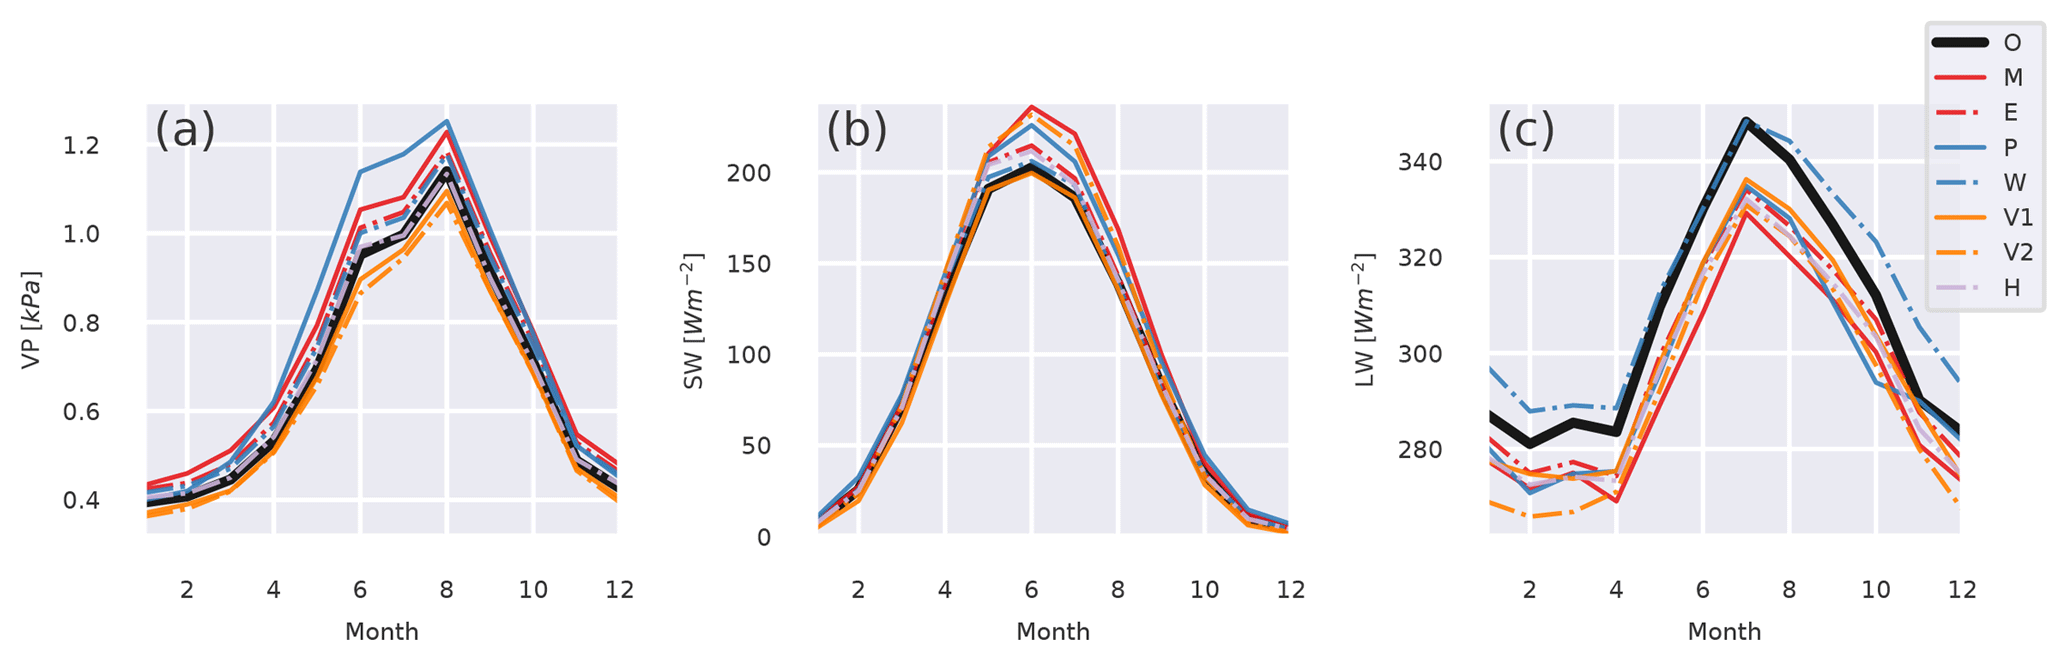 ESSD - Merits of novel high-resolution estimates and existing long